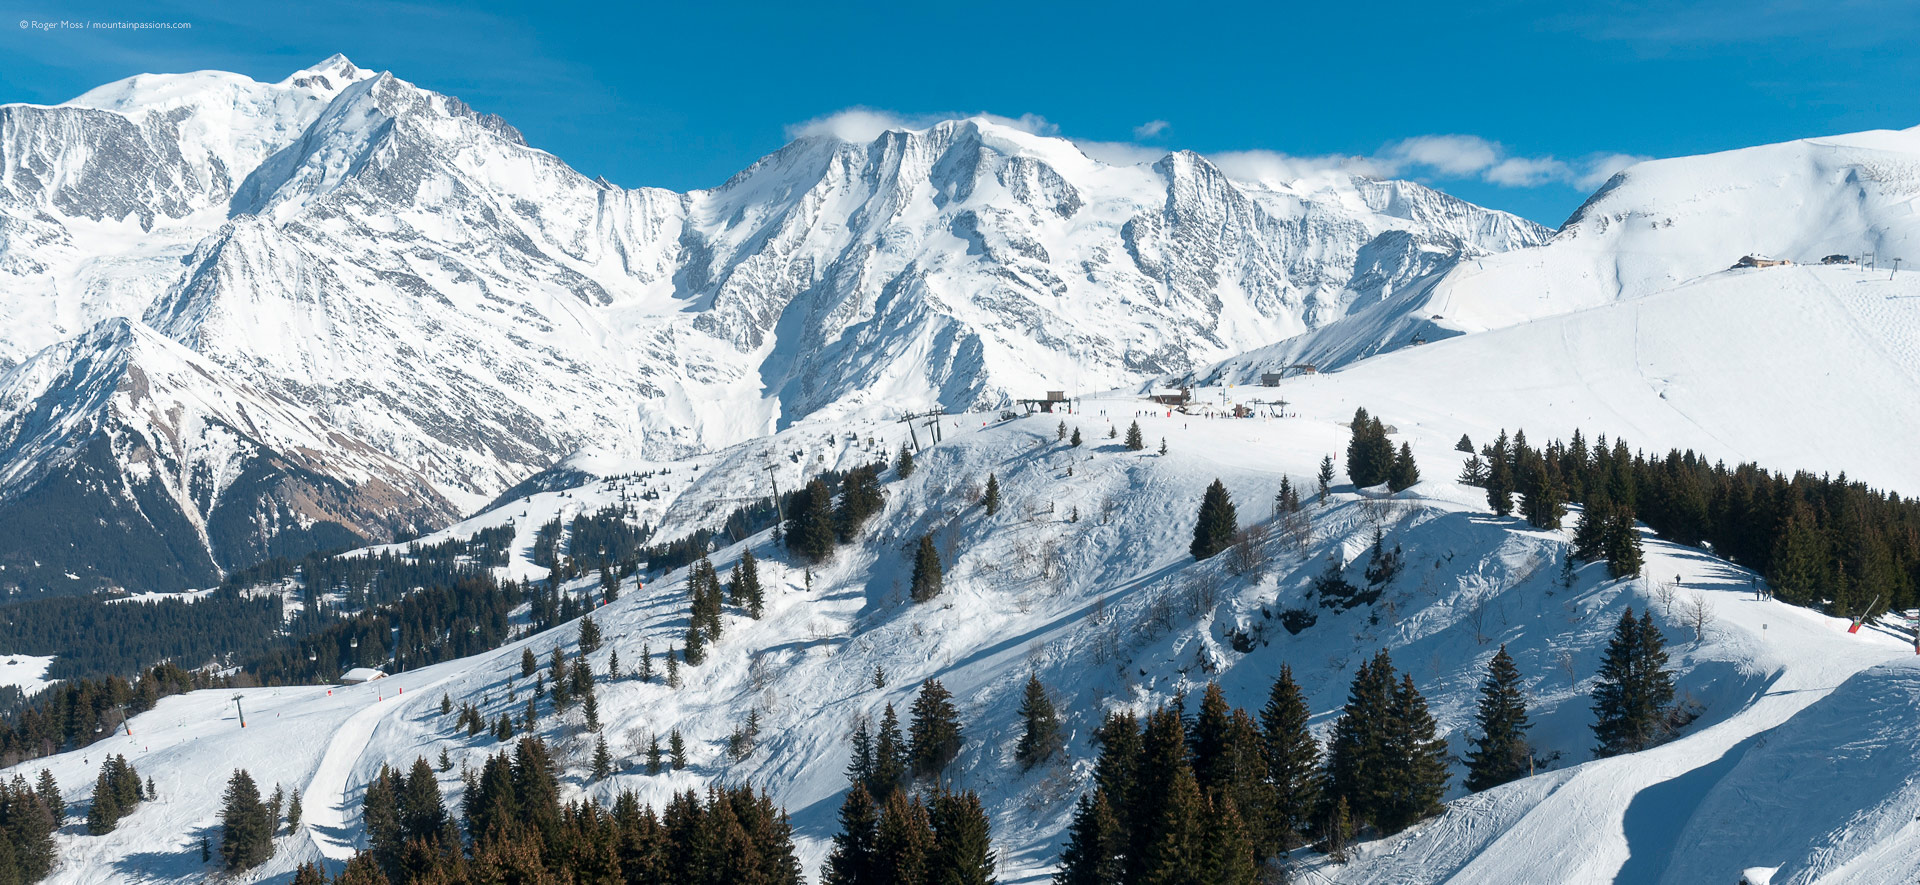 Wide view of snow-covered mountains, with distant ski lift, pistes and Mont-Blanc in background.